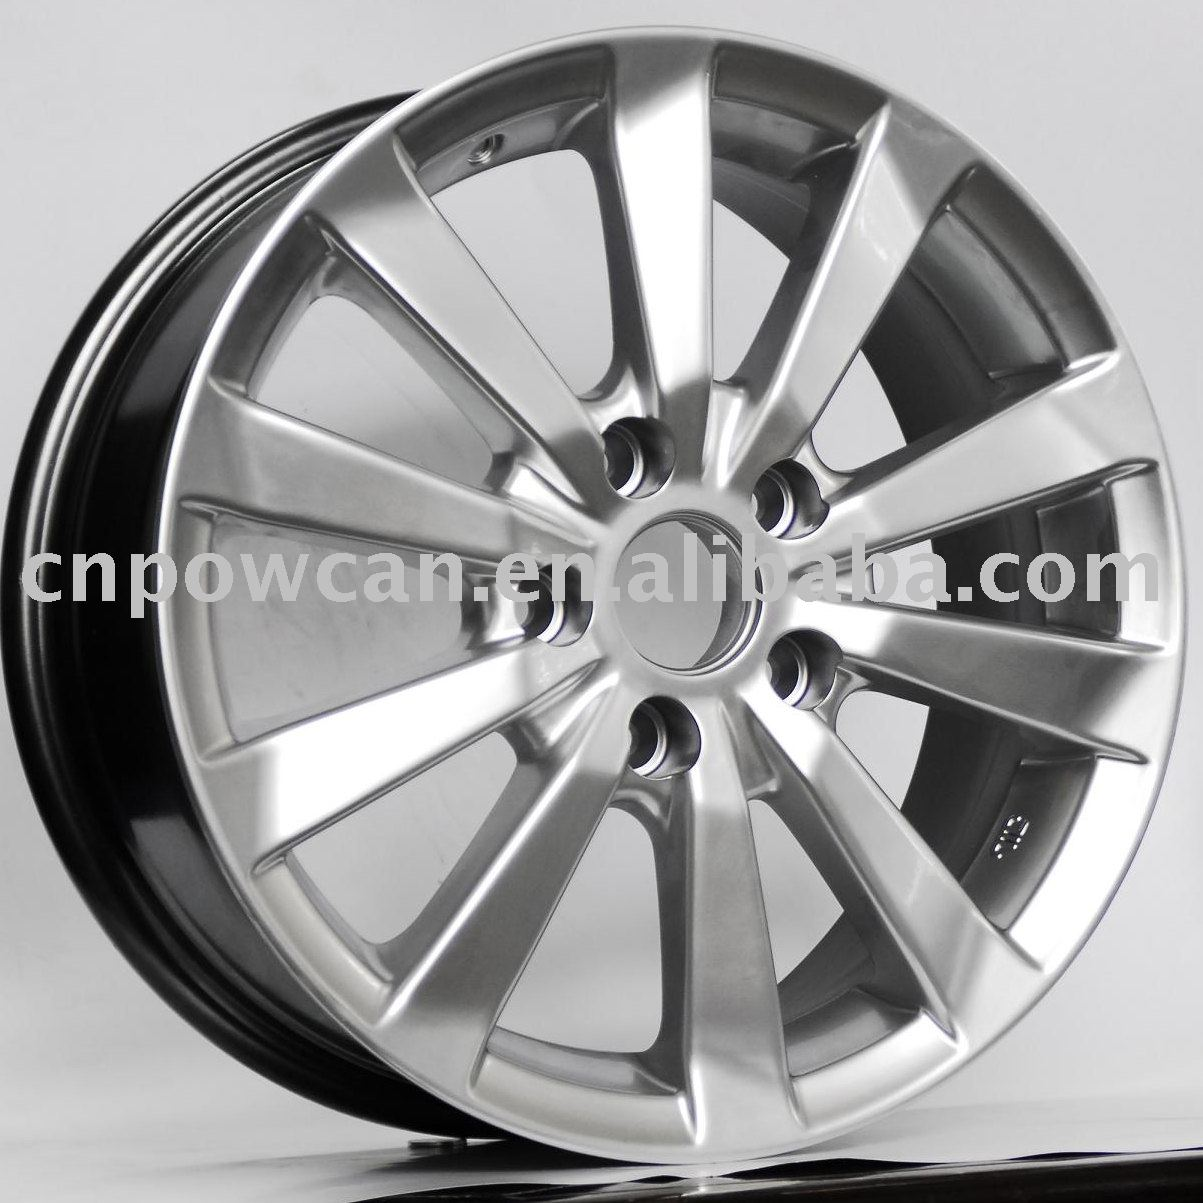 BK104 alloy wheel